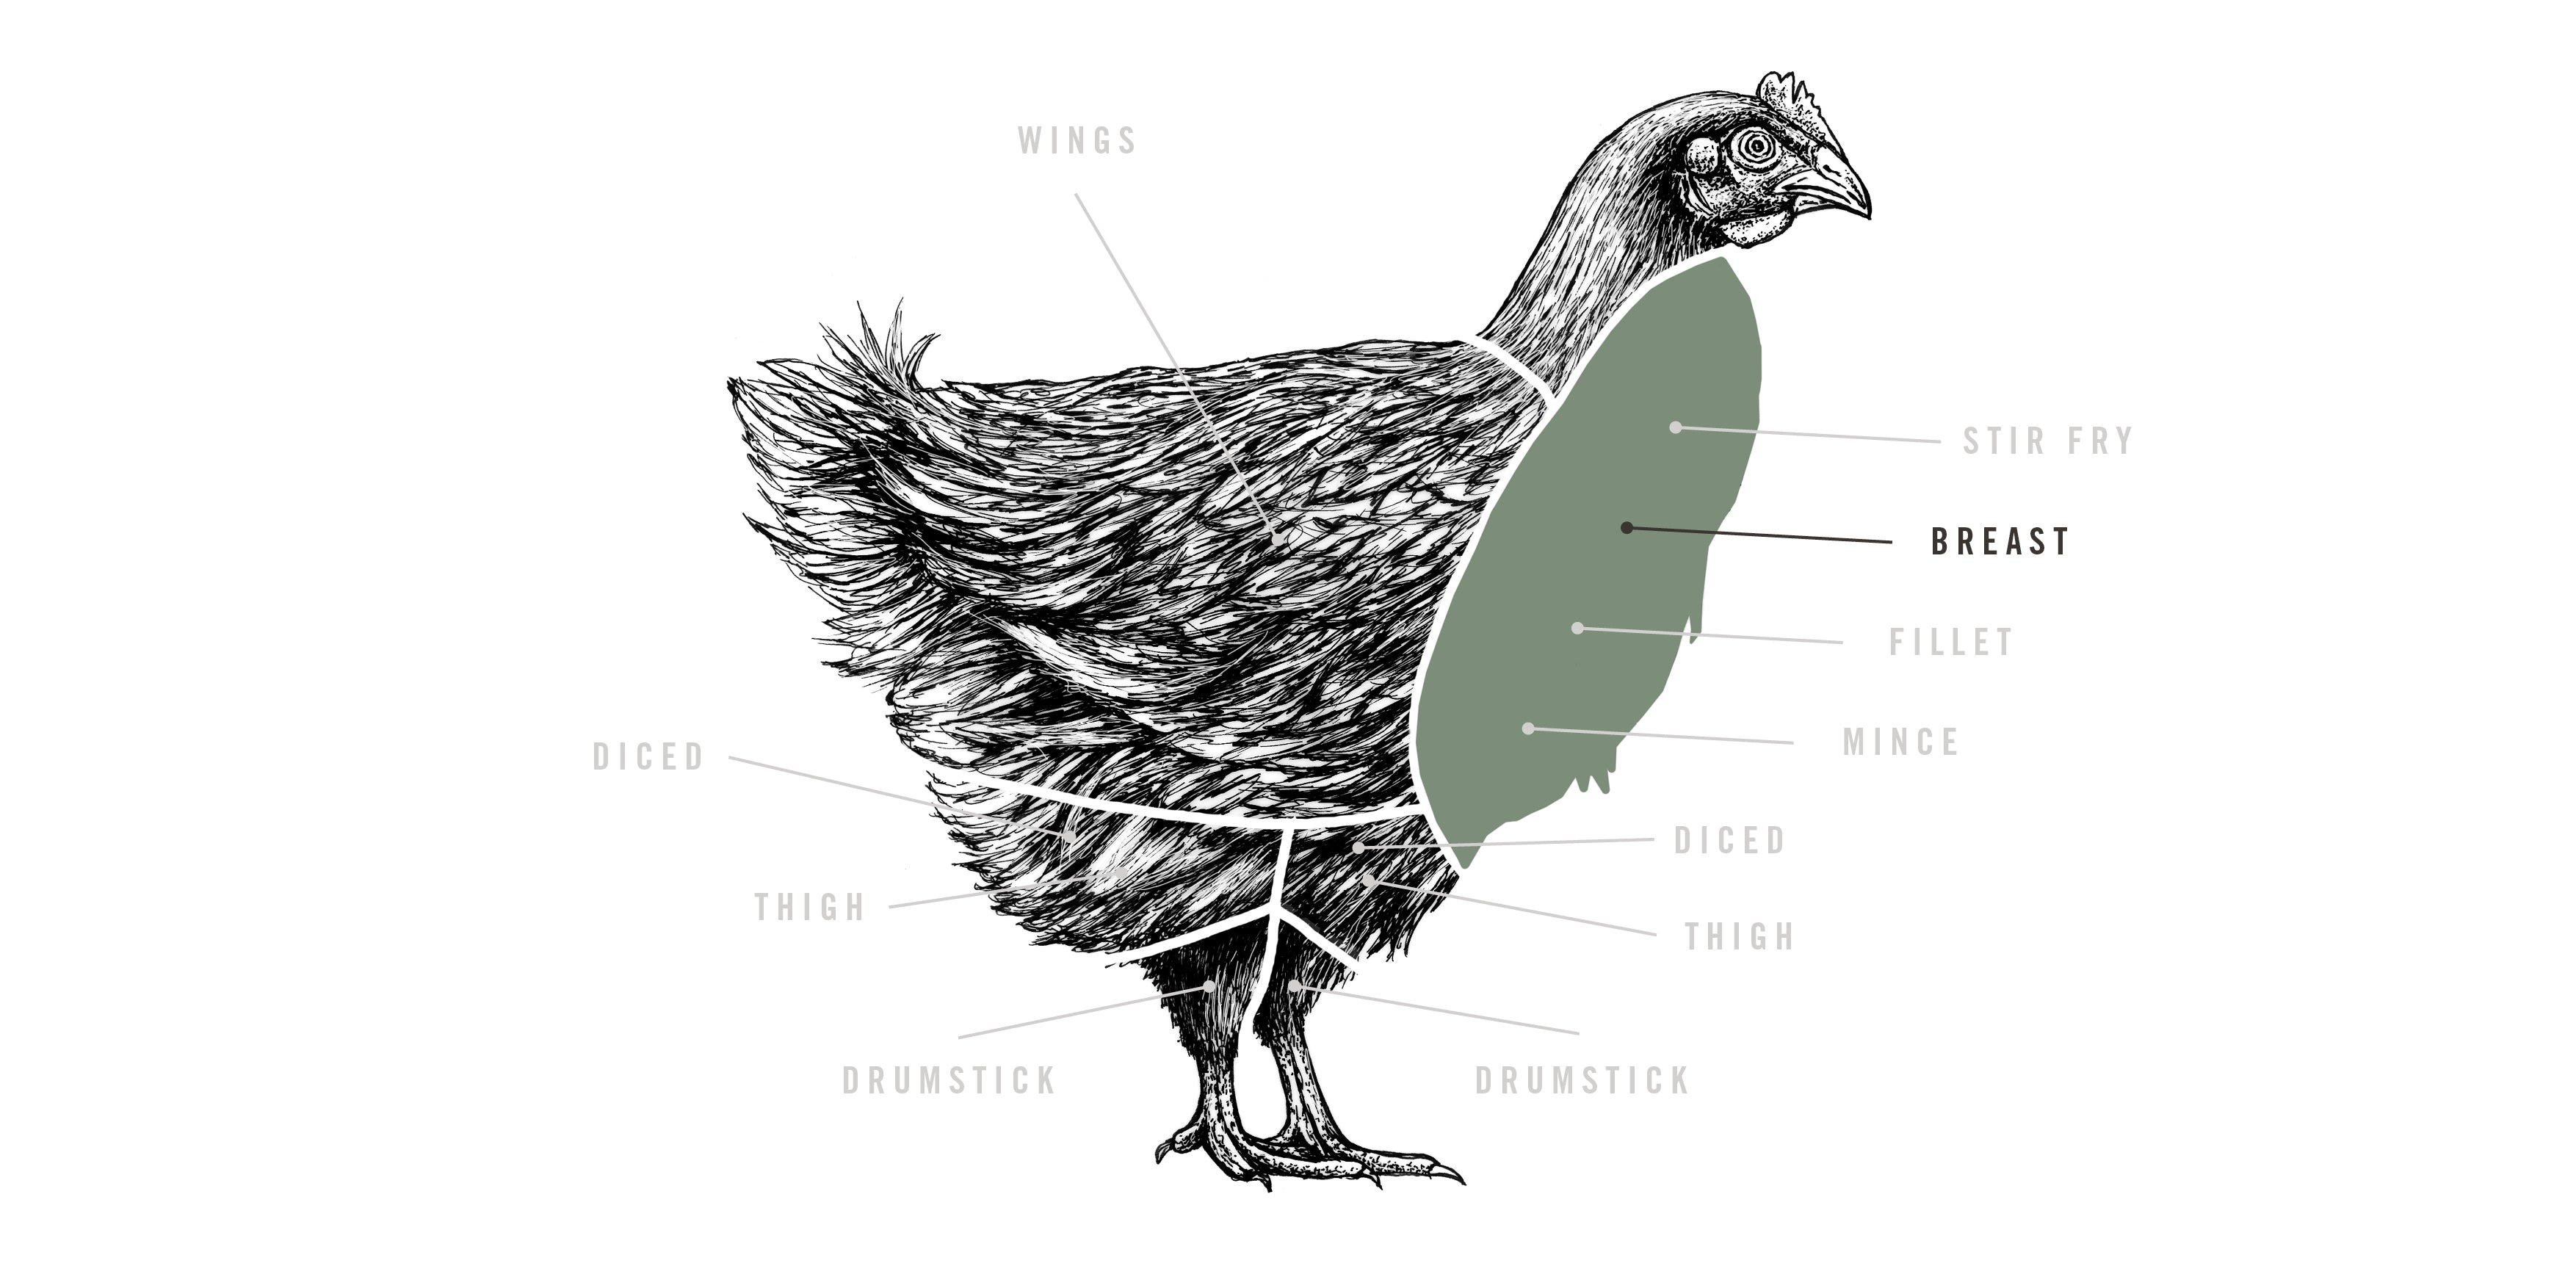 Free Range Chicken Breast Pipers Farm Diagram Of The Wing A Top View Meat Cuts